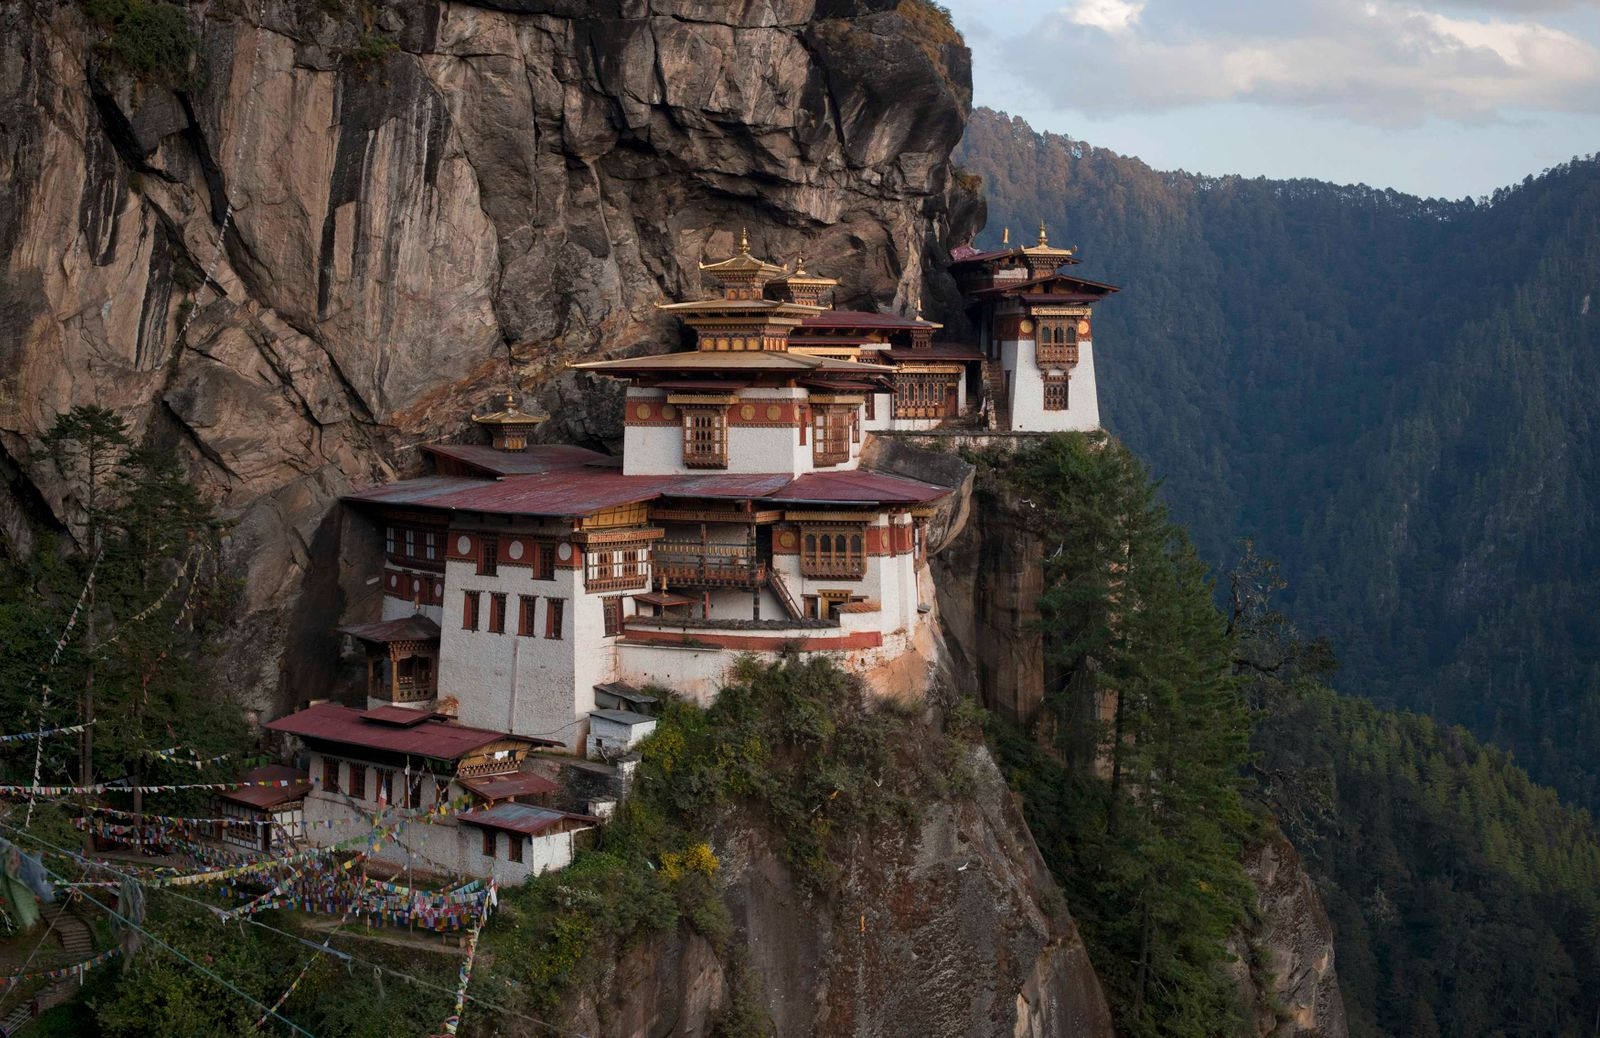 The ParoTaktsang Palphug Buddhist monastery, also known as the Tiger's Nest, is photographed in Paro district, Bhutan